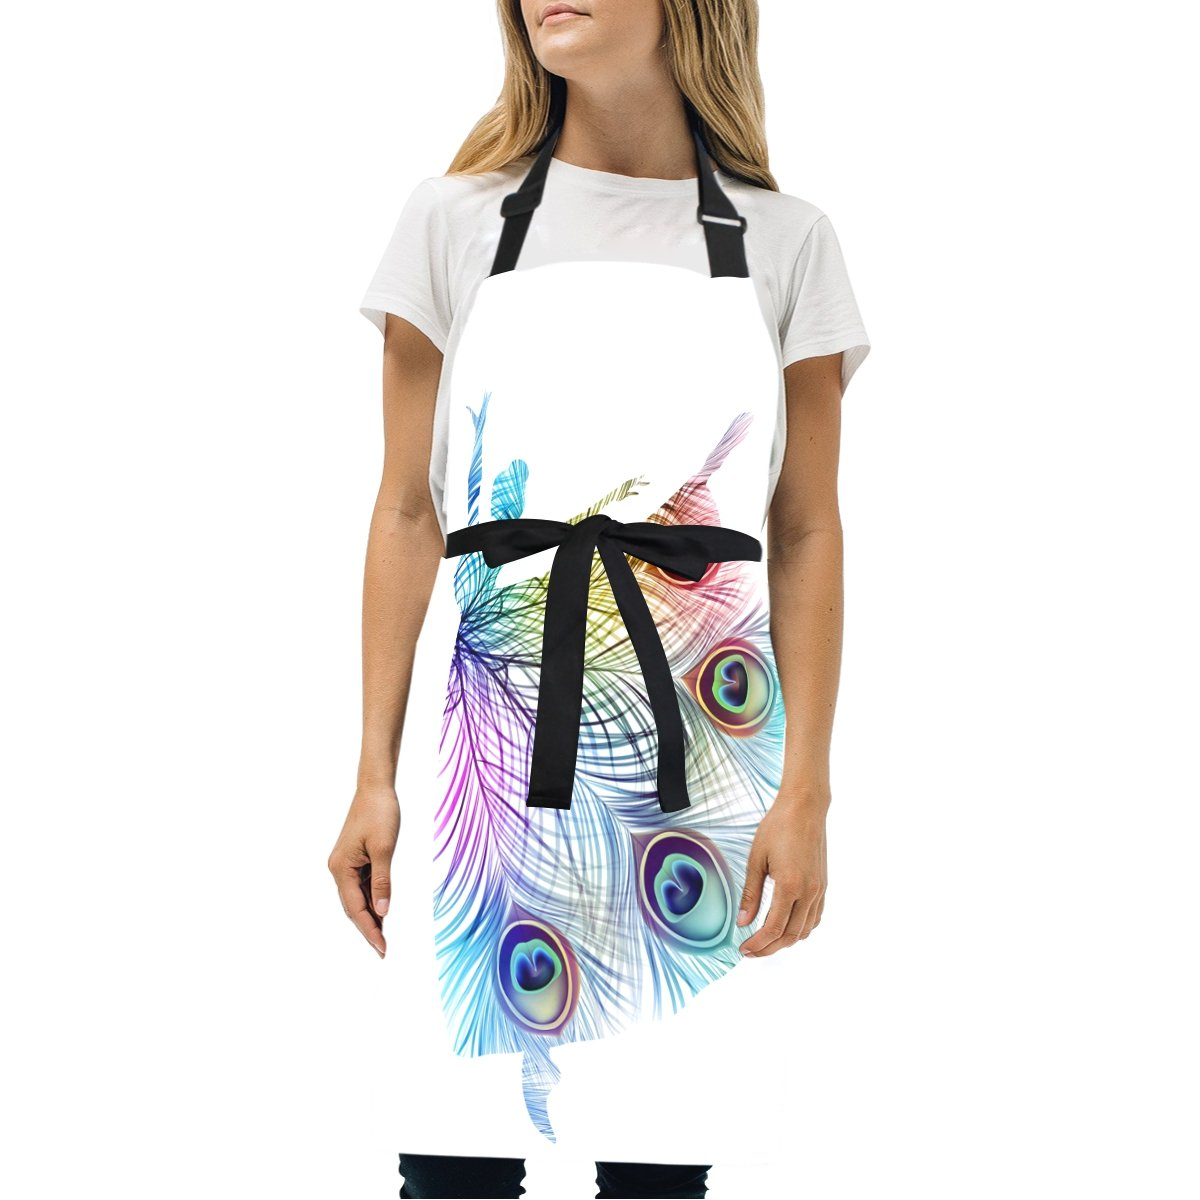 Naanle Colorful Peacock Feather Ballerina Silhouette Dancer Dance Ballet On White Kitchen Chef Cooking Salon Aprons for Women Men Vintage Pinafore Apron Dress